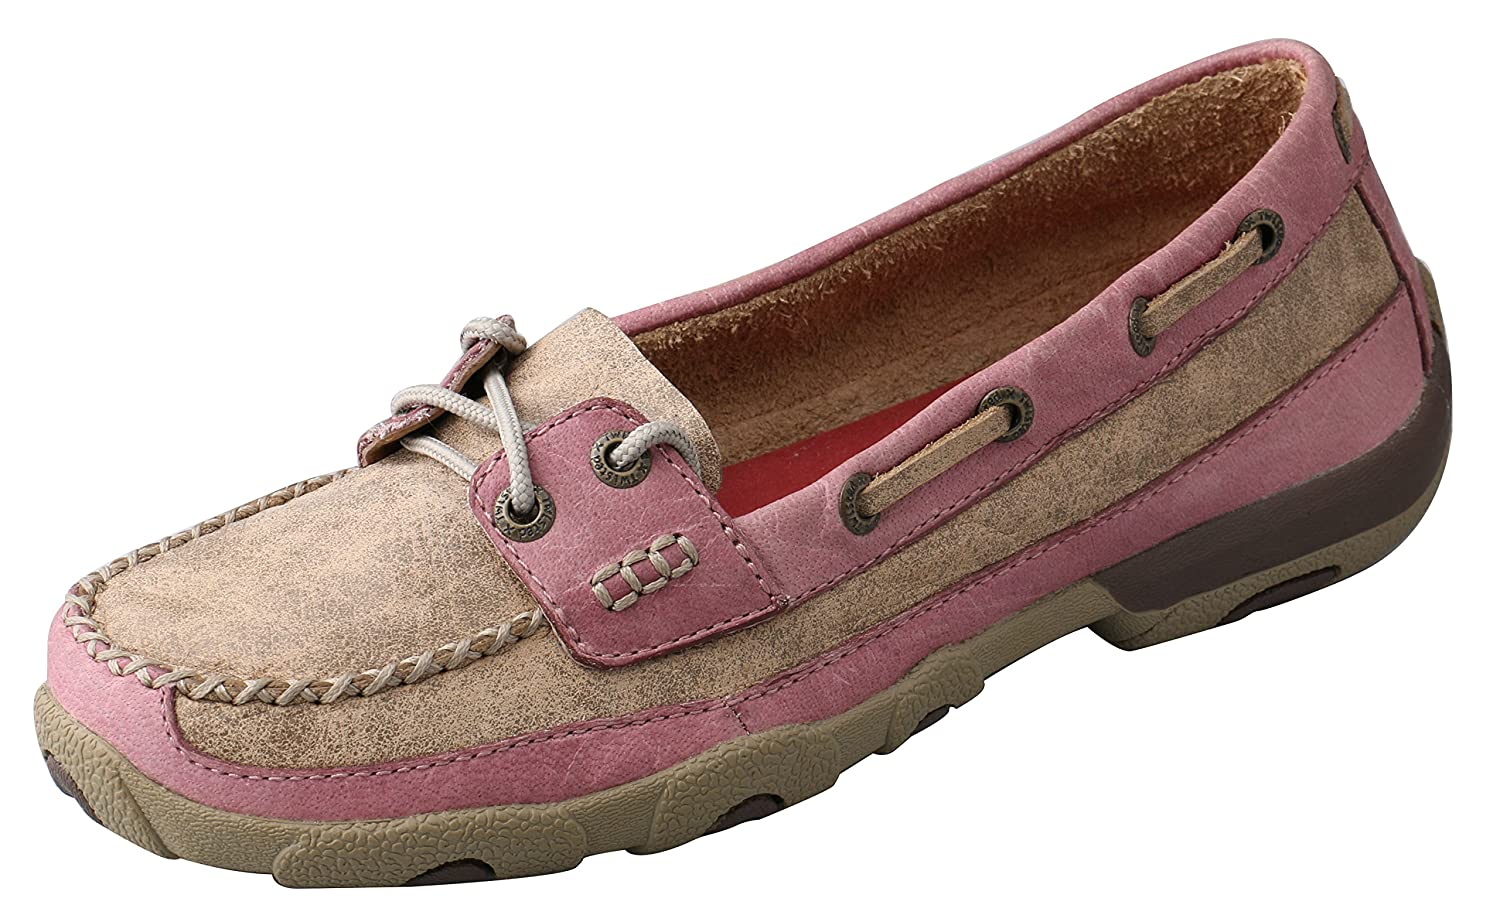 Twisted X Women's Leather Lace-up Rubber Sole Driving Moccasins - Bomber/Pink B00INZJTME 5.5|Brown